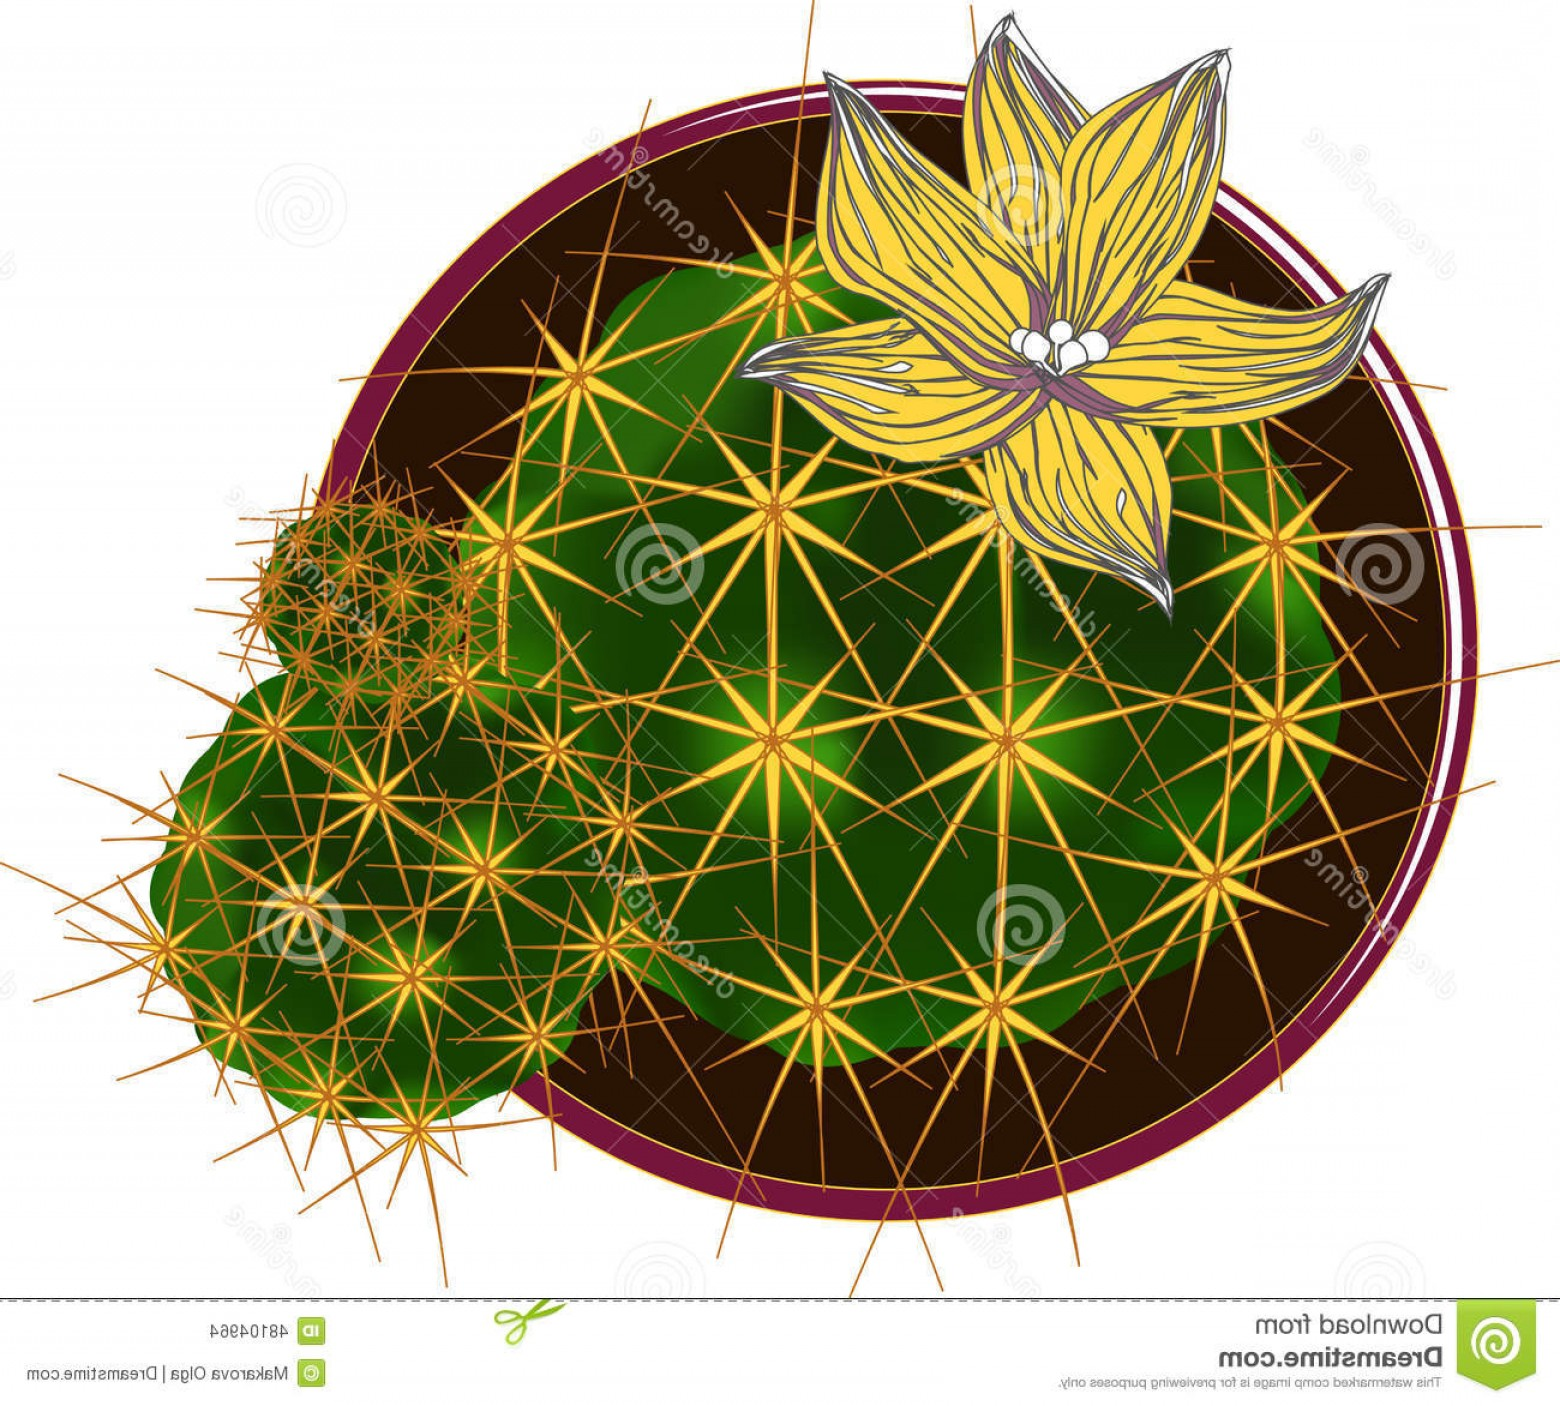 Cactus And Flower Vector: Stock Illustration Vector Cactus Flower Image Decorative Pot Viewed Top Has Two Little Cactuses Growing Image